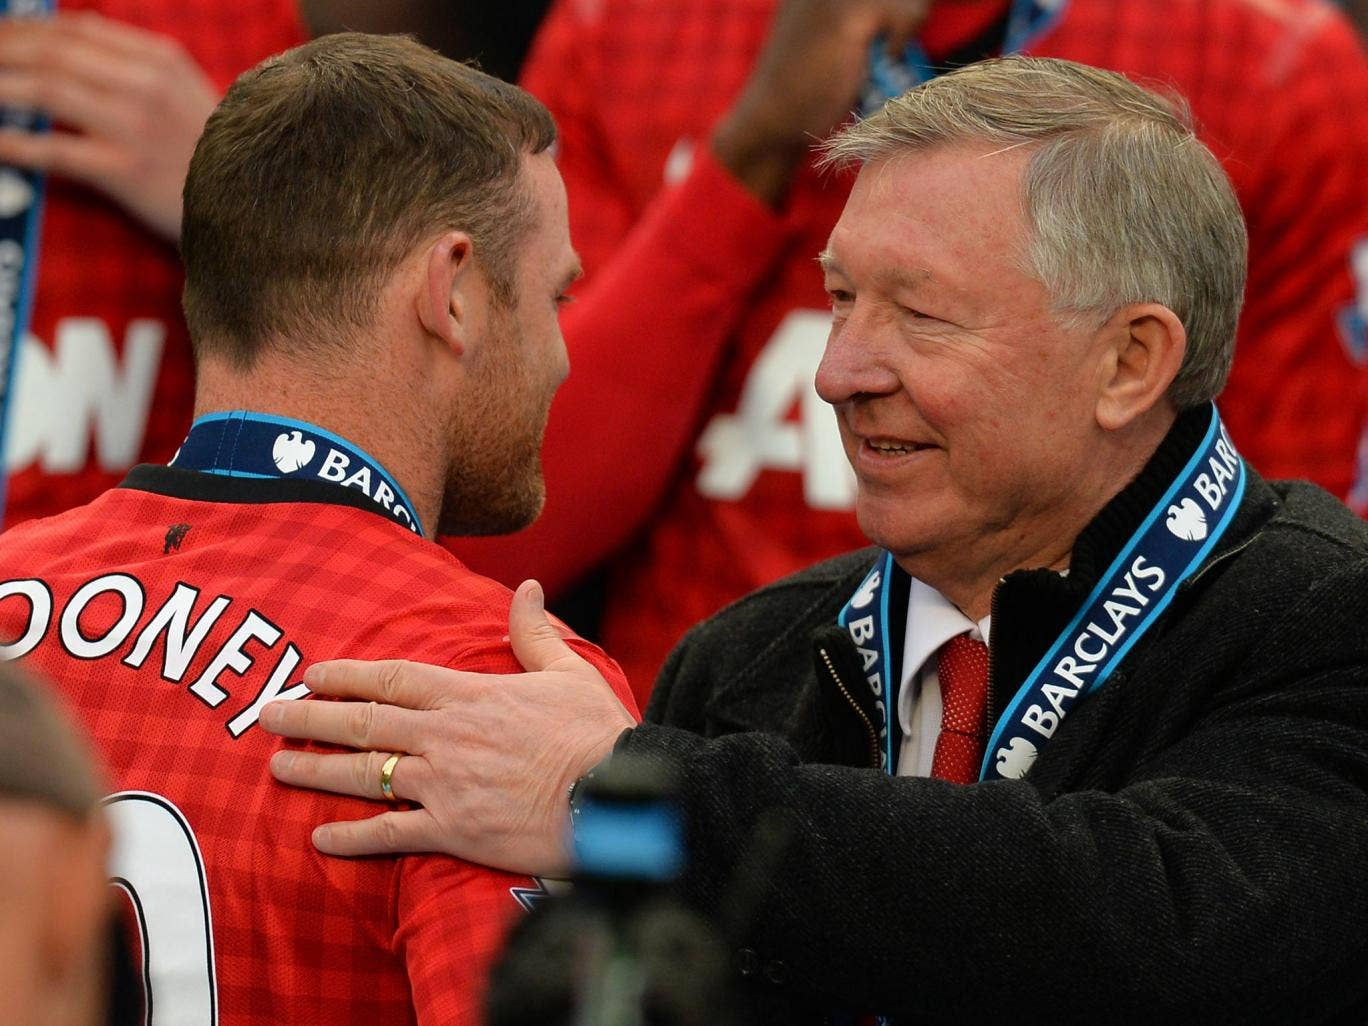 Wayne Rooney receives a pat on the back from Sir Alex Ferguson as Manchester United are awarded the Premier League trophy